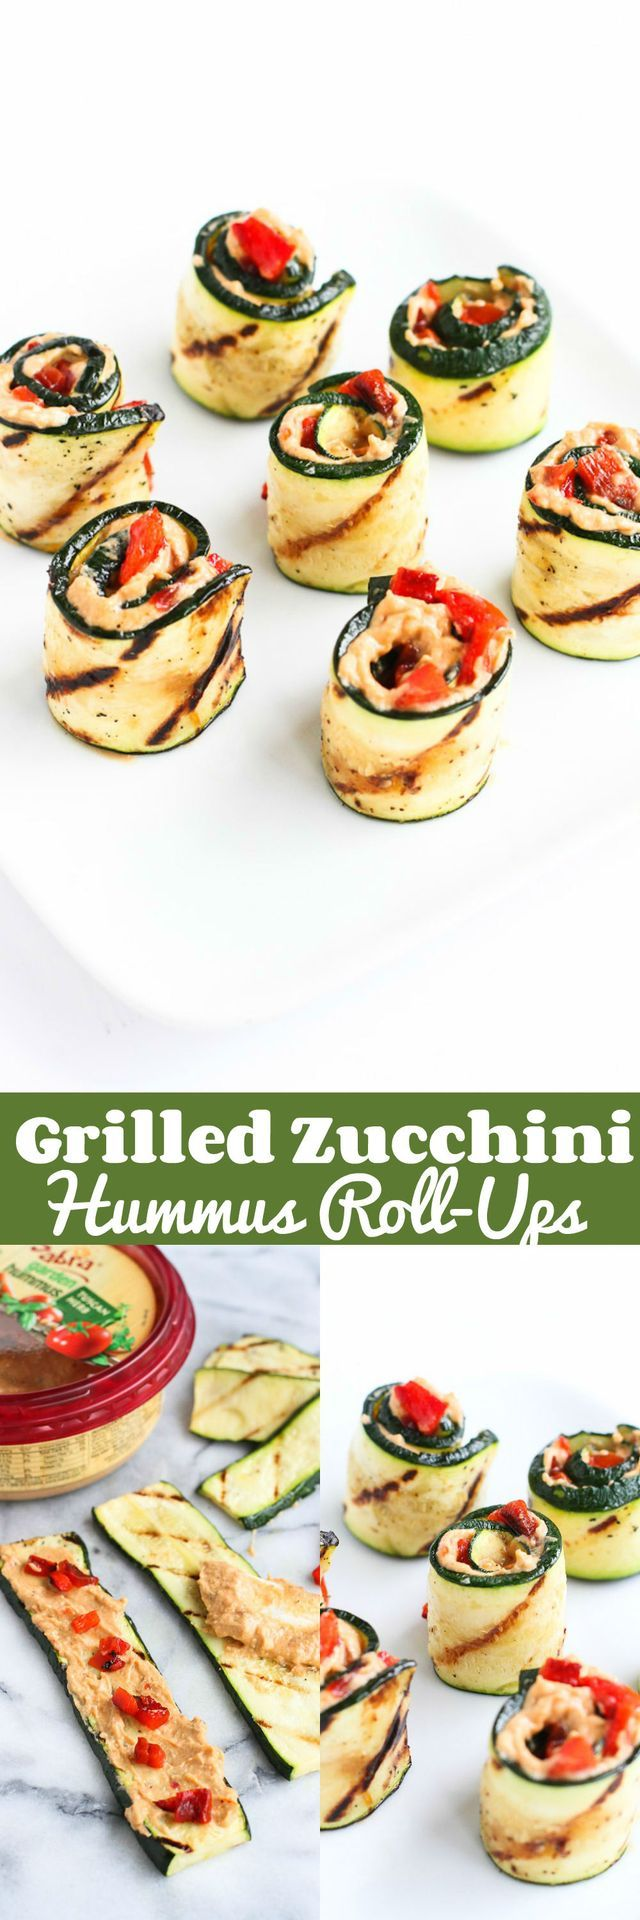 These grilled zucchini rolls are the ultimate summertime appetizers or snacks. Fill them with hummus and roasted peppers for fantastic flavor! Thank you to Sabra for helping me to share this recipe wi